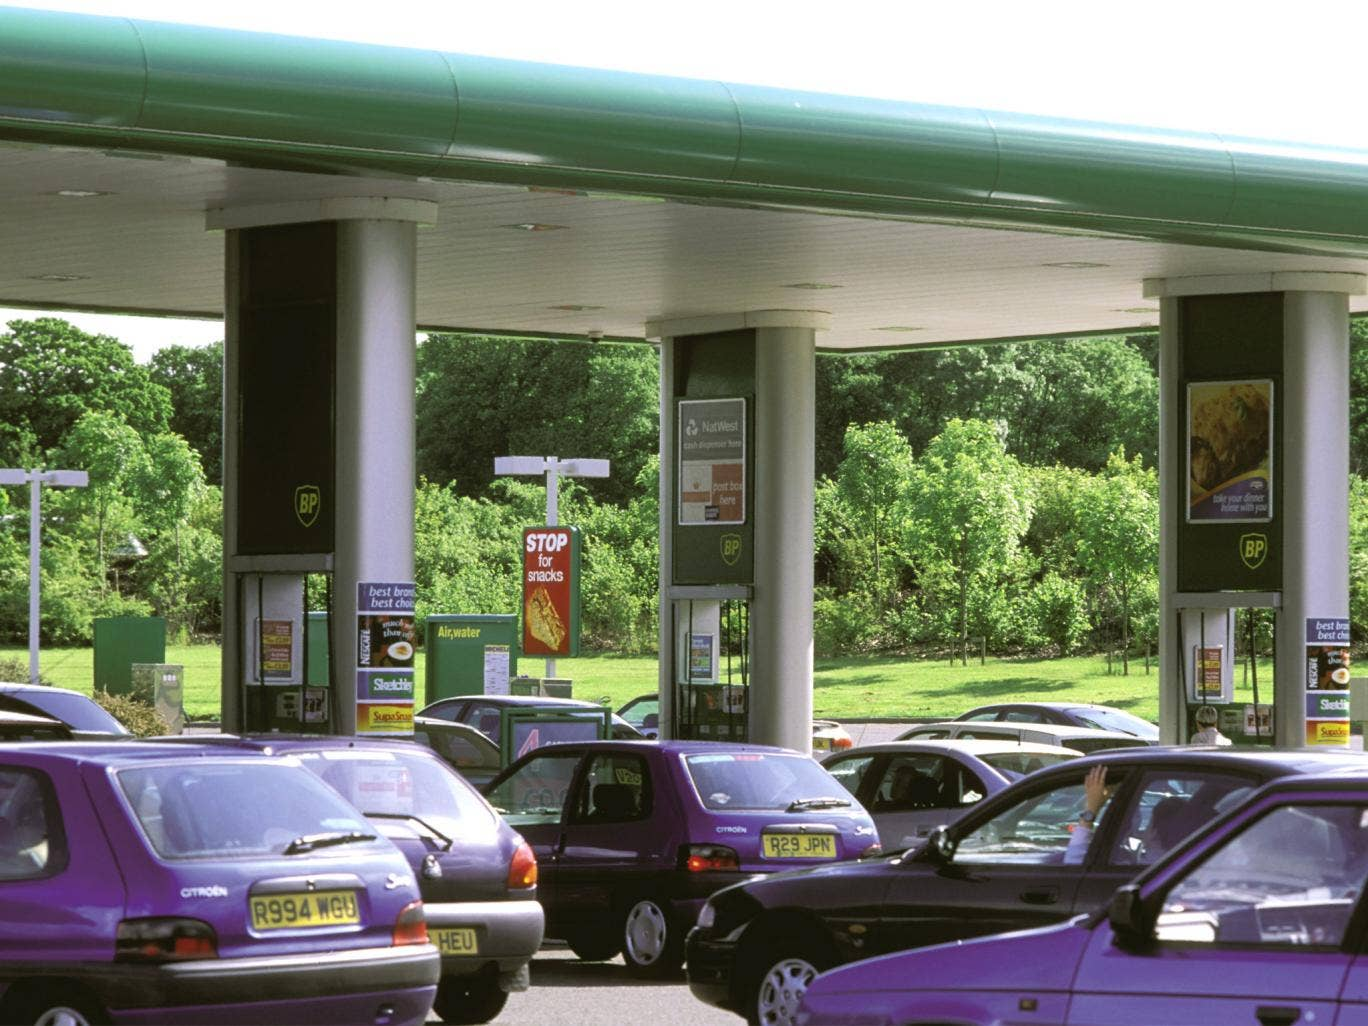 Motorway signs displaying fuel prices for upcoming services could soon be commonplace, allowing drivers to compare them and make an informed choice